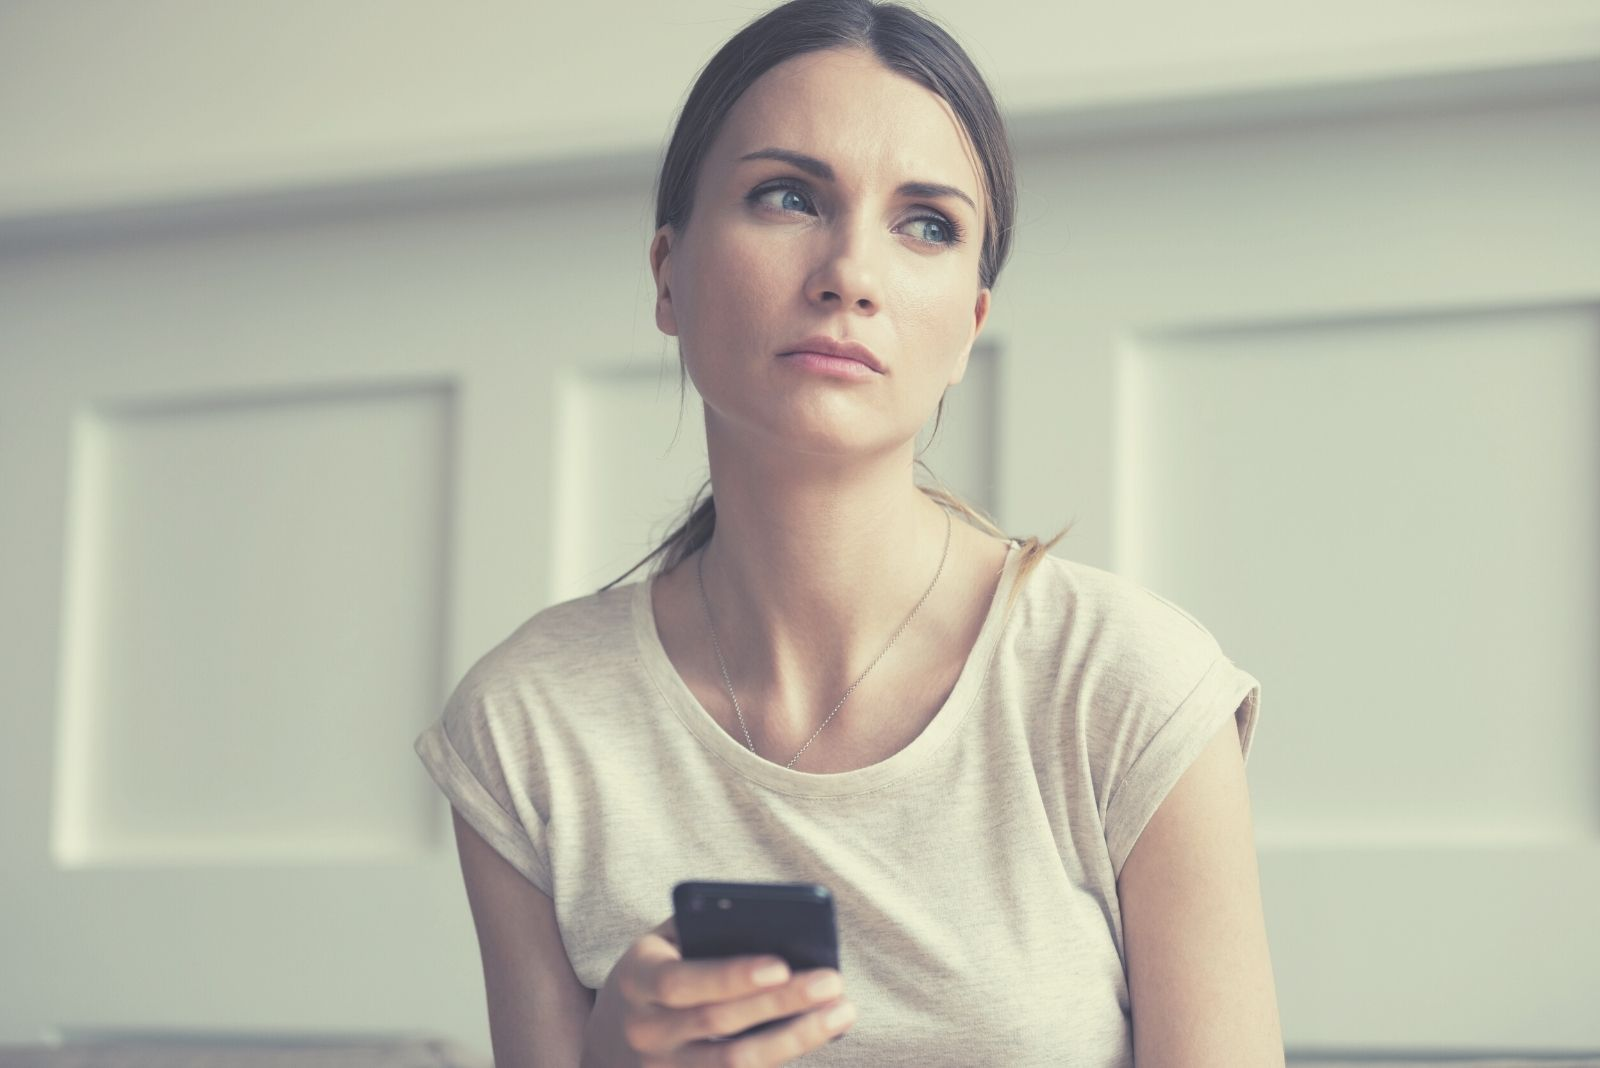 pensive woman on the phone looking away sad and sitting inside the house